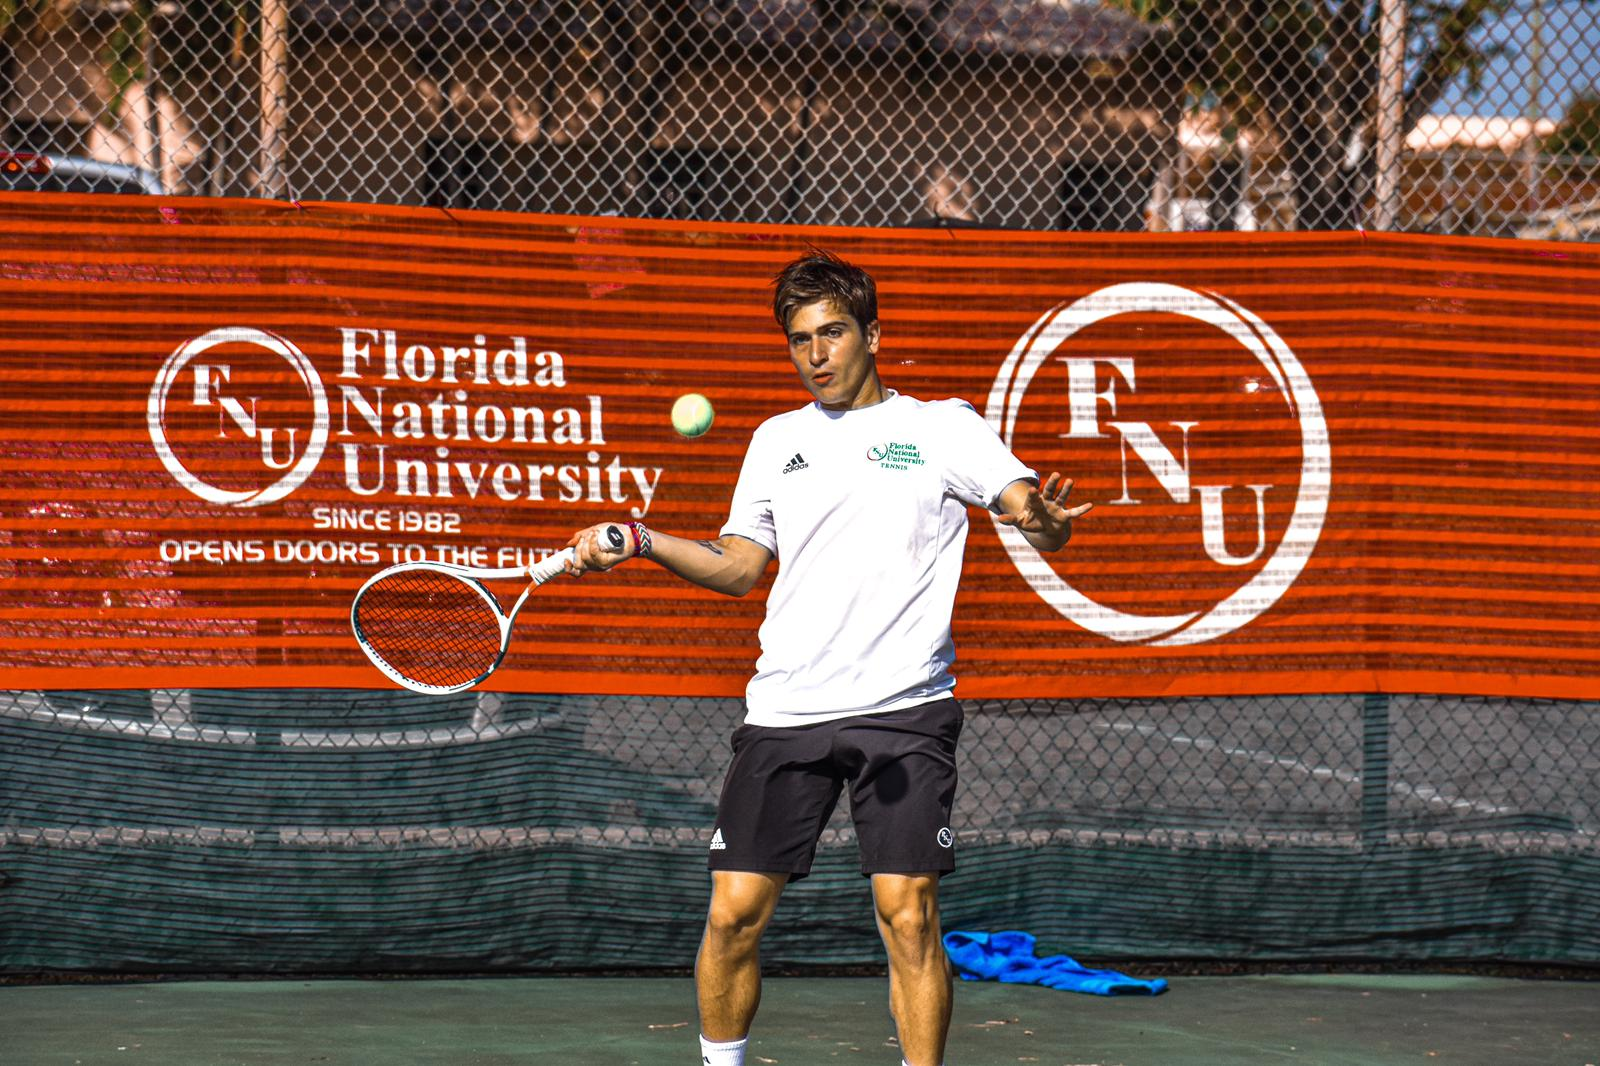 FNU men's tennis player Joaquim during the game